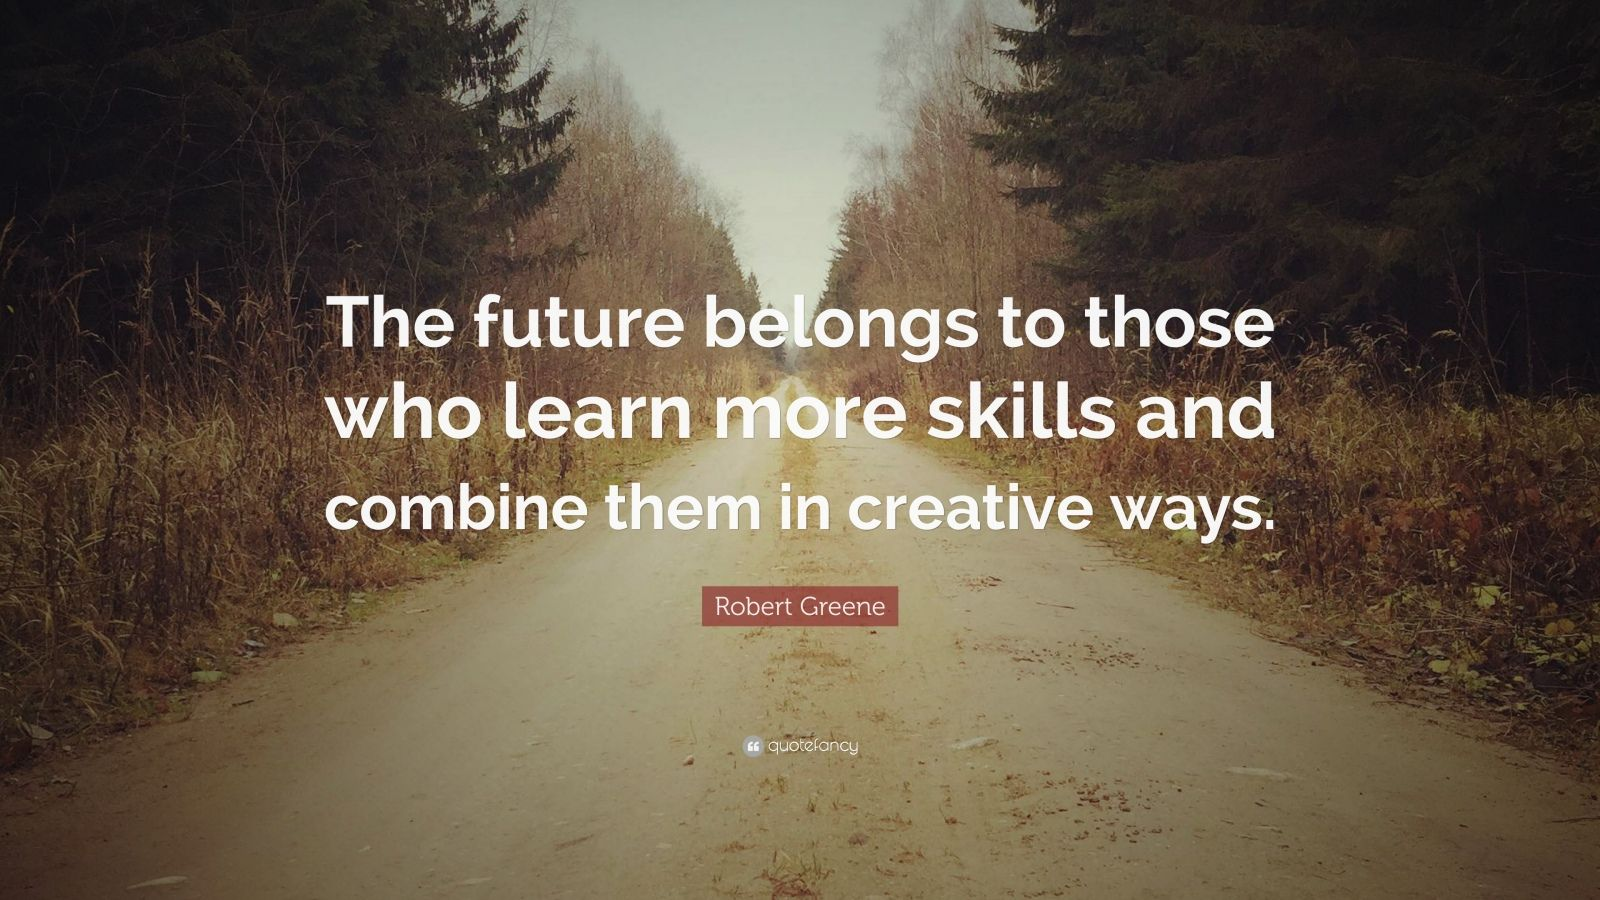 "Quotes About Skills: ""The future belongs to those who learn more skills and combine them in creative ways."" — Robert Greene"